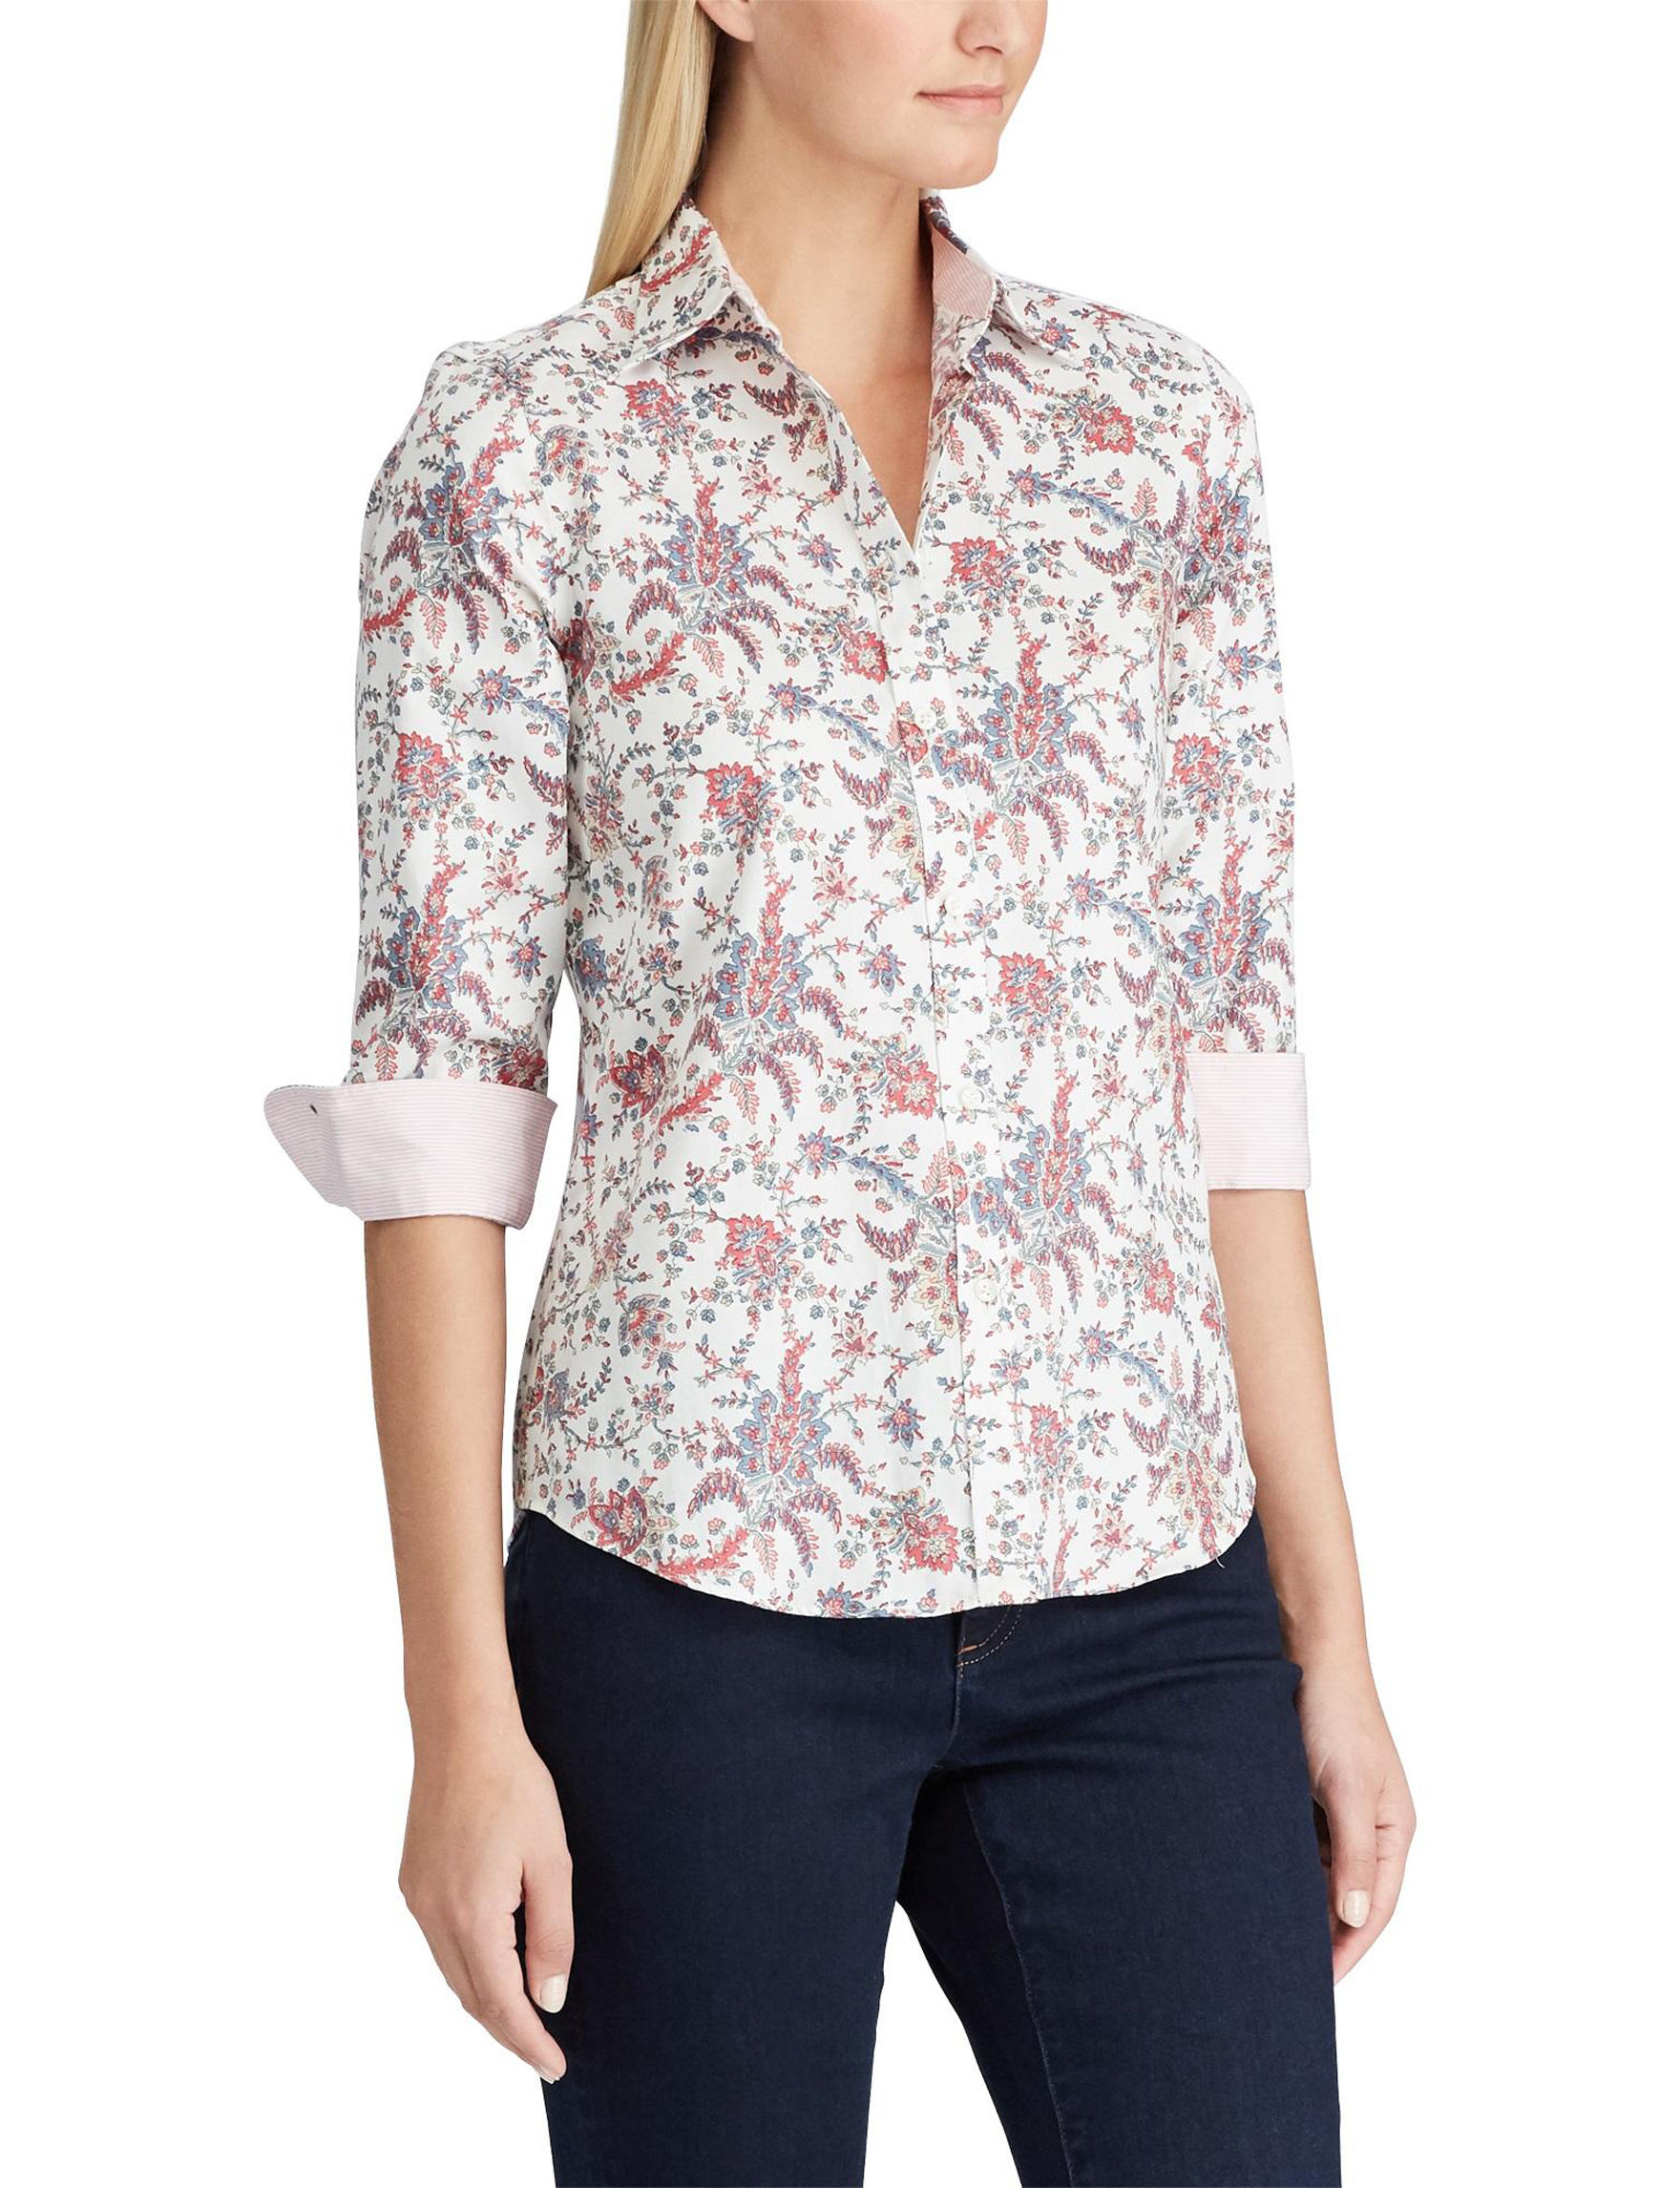 Chaps White Floral Shirts & Blouses